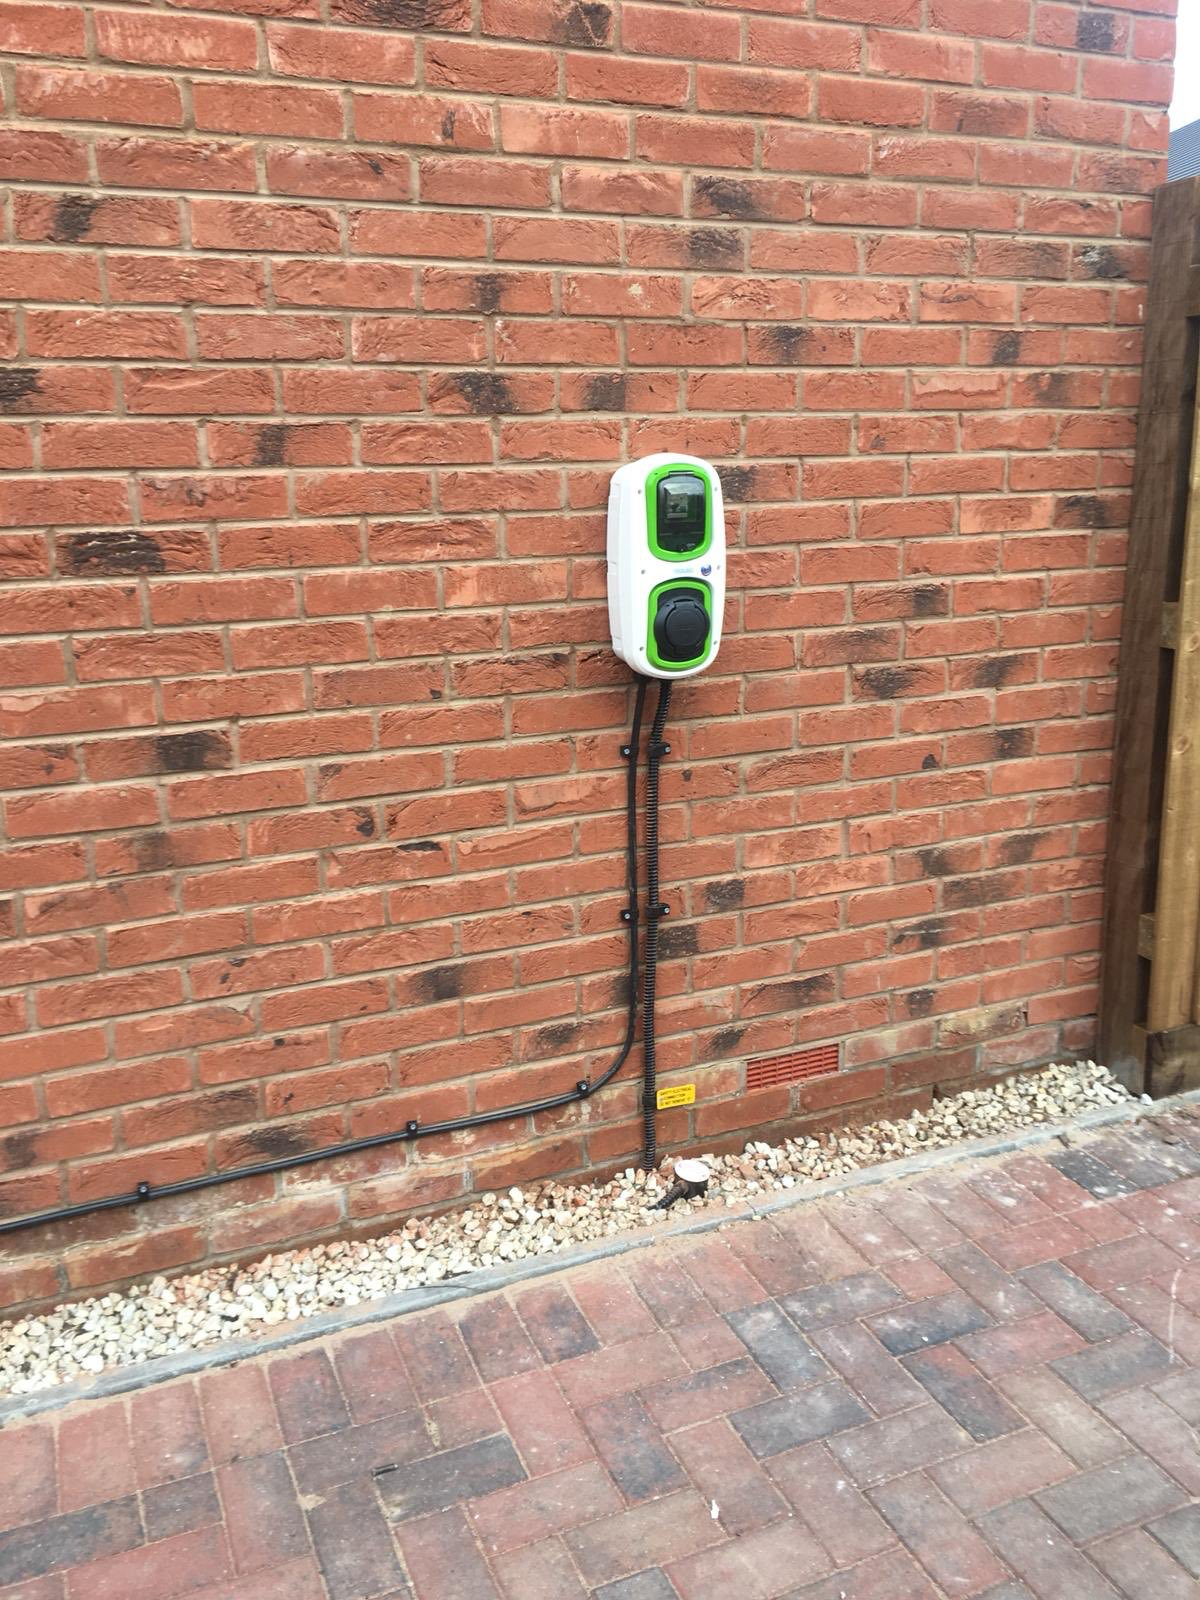 WallPod : EV charging unit | Type 2 Socket | 3 Phase | 16/32 Amp(11/22kW) | 3 Pole Isolator | IP65 |